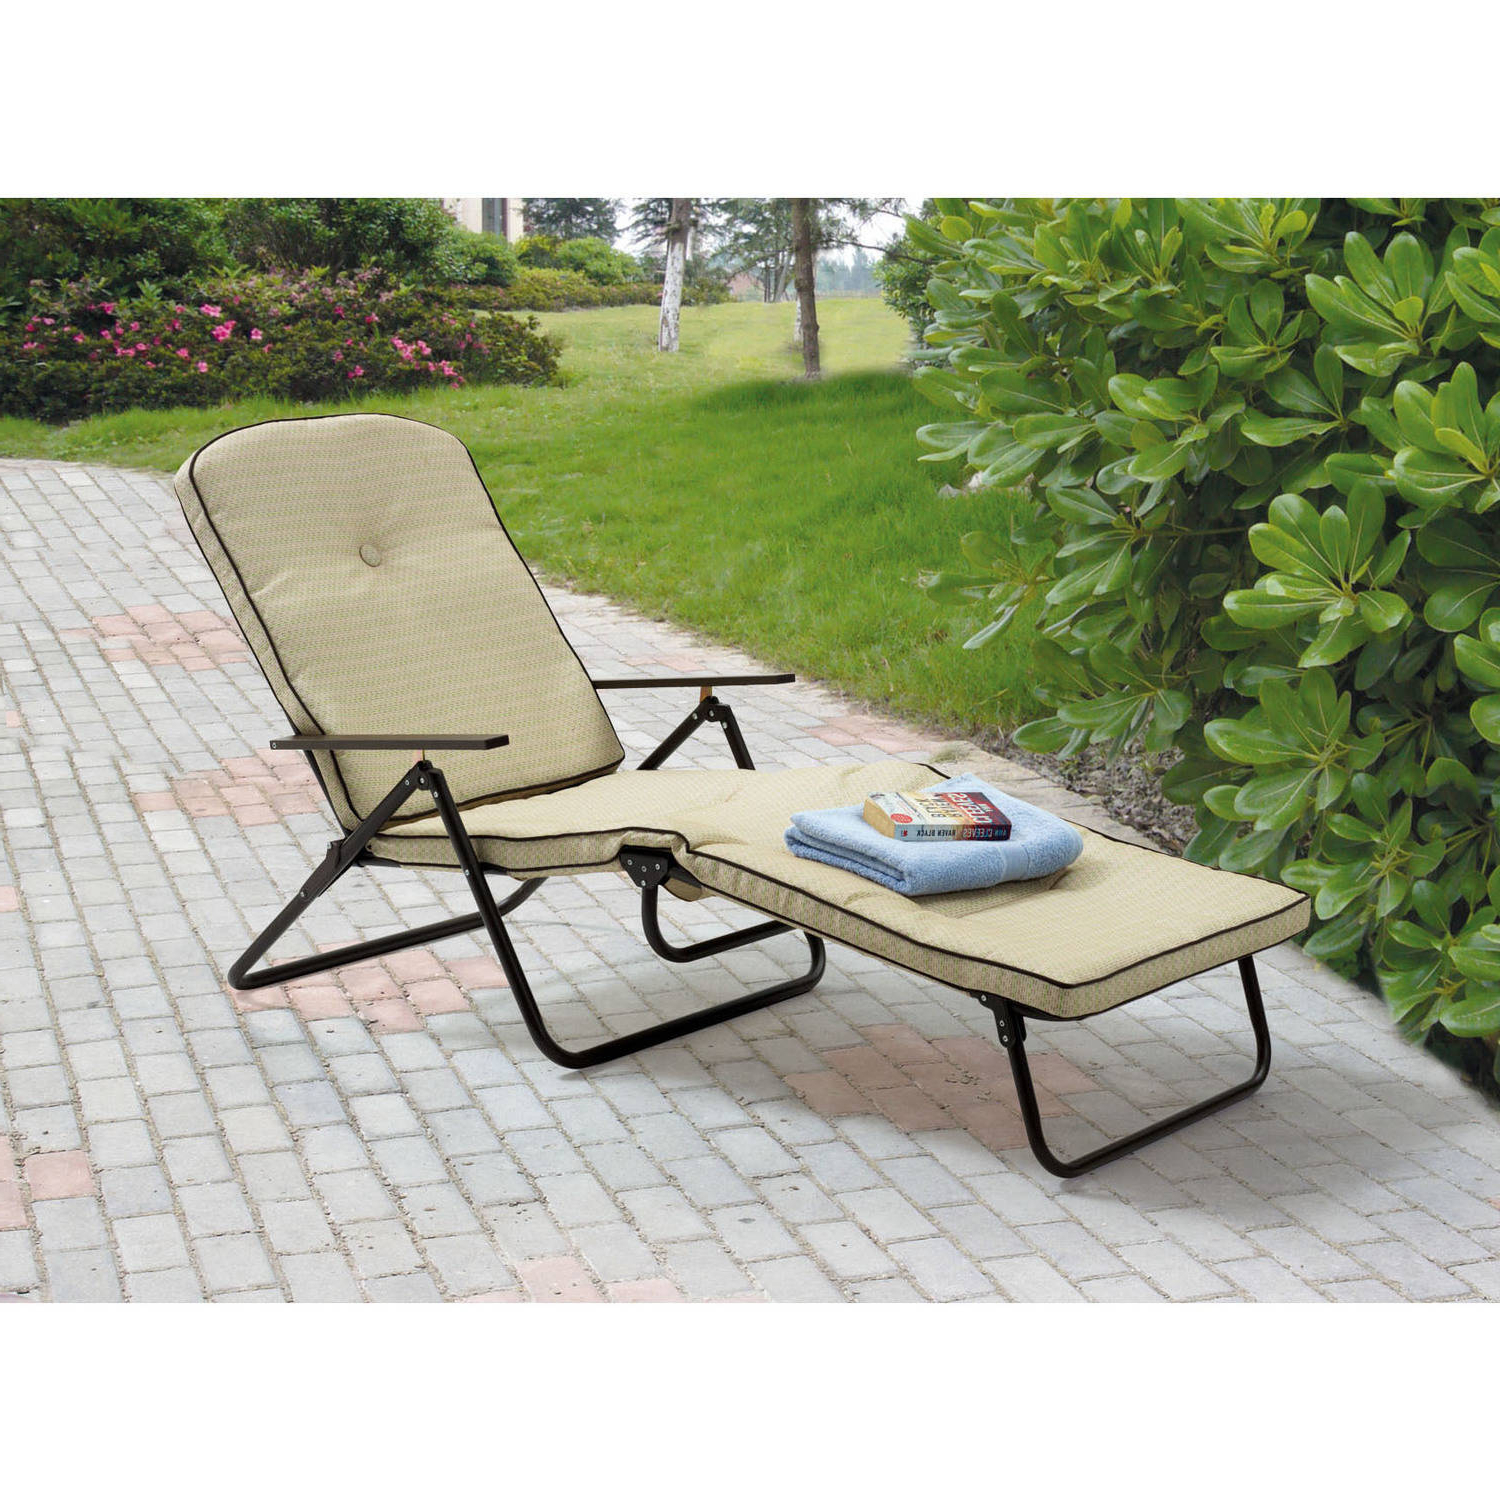 Outdoor Yard Pool Recliner Folding Lounge Table Chairs Regarding Fashionable Mainstays Sand Dune Outdoor Padded Folding Chaise Lounge, Tan (View 18 of 25)